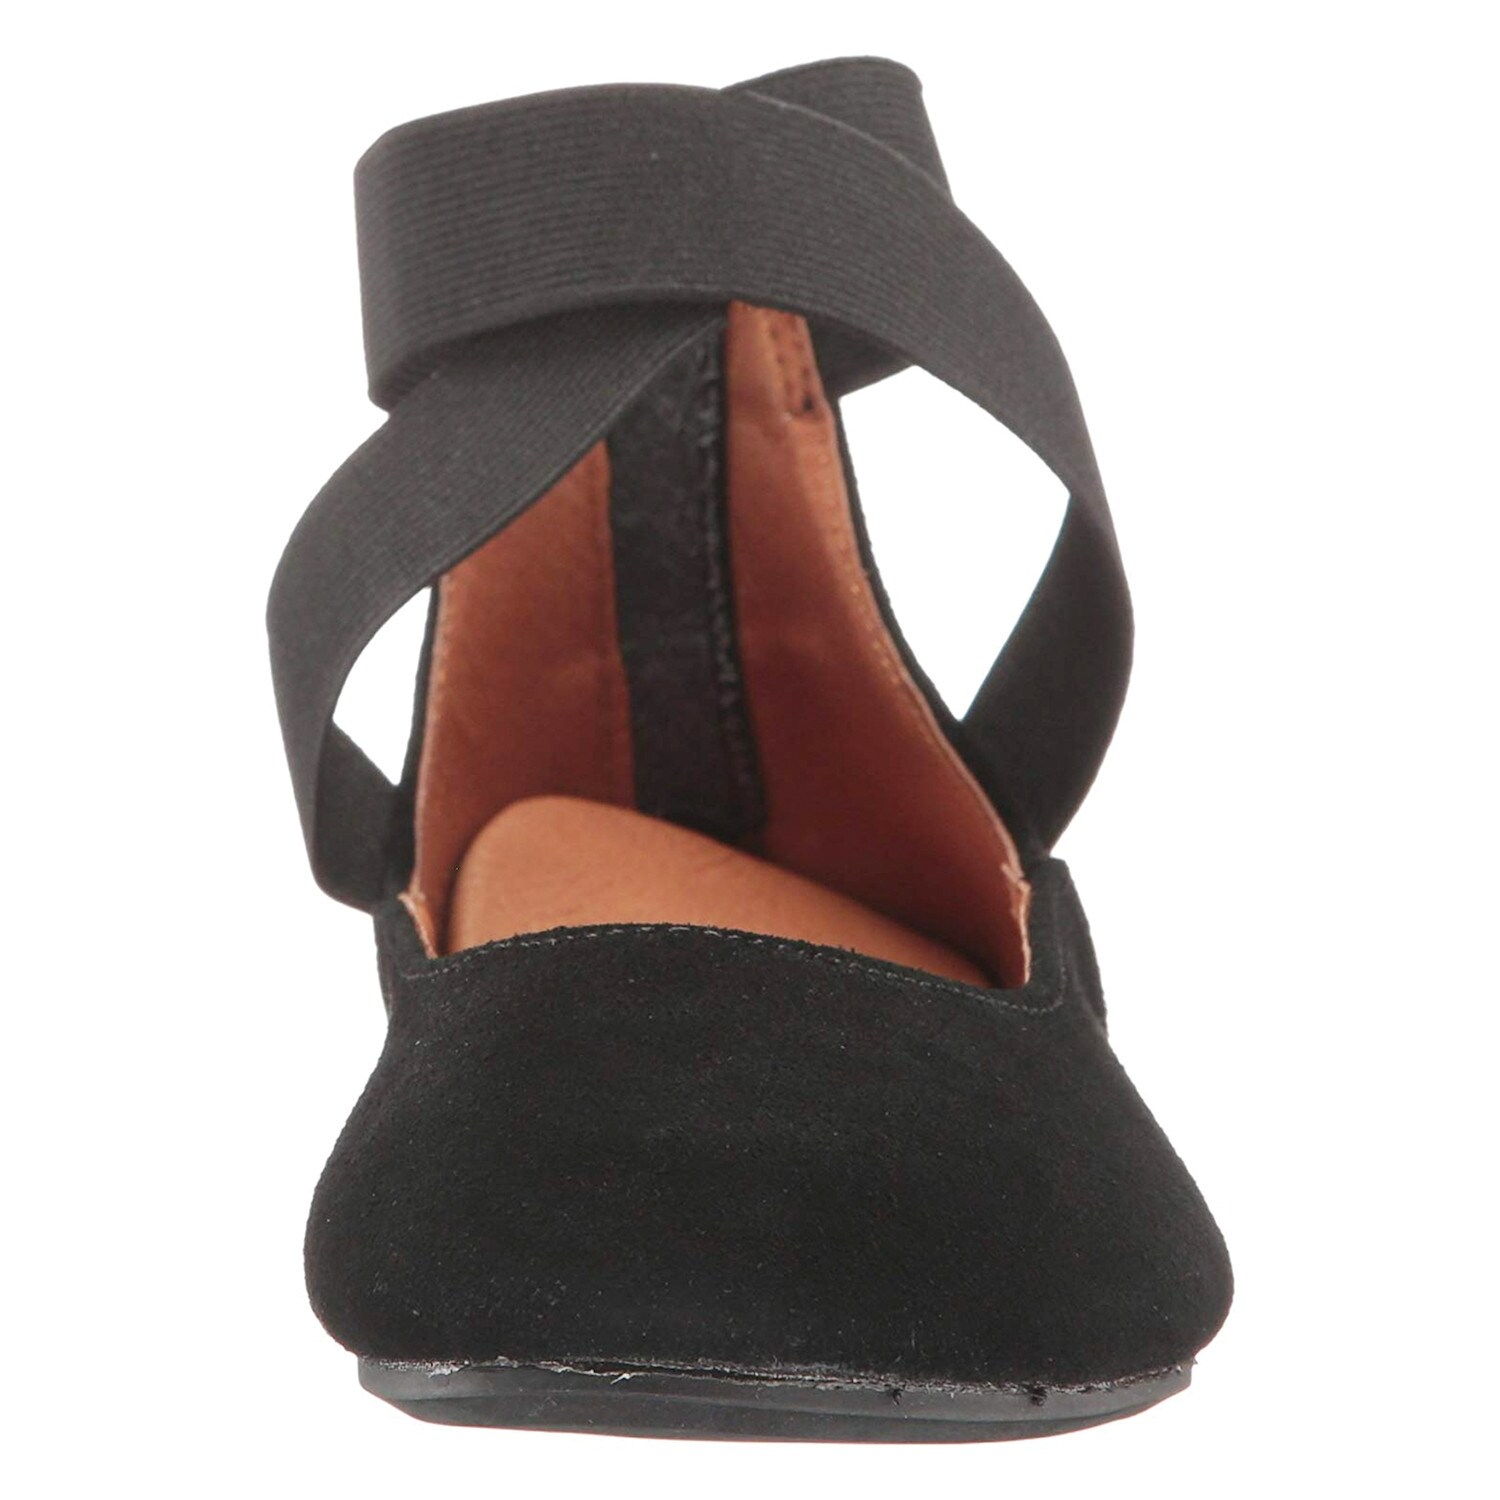 1c0fa9e5b8e9 Shop Women s Arabesque Strappy Ballet Flats - Zip Back - Suede - On Sale -  Free Shipping Today - Overstock - 15950255